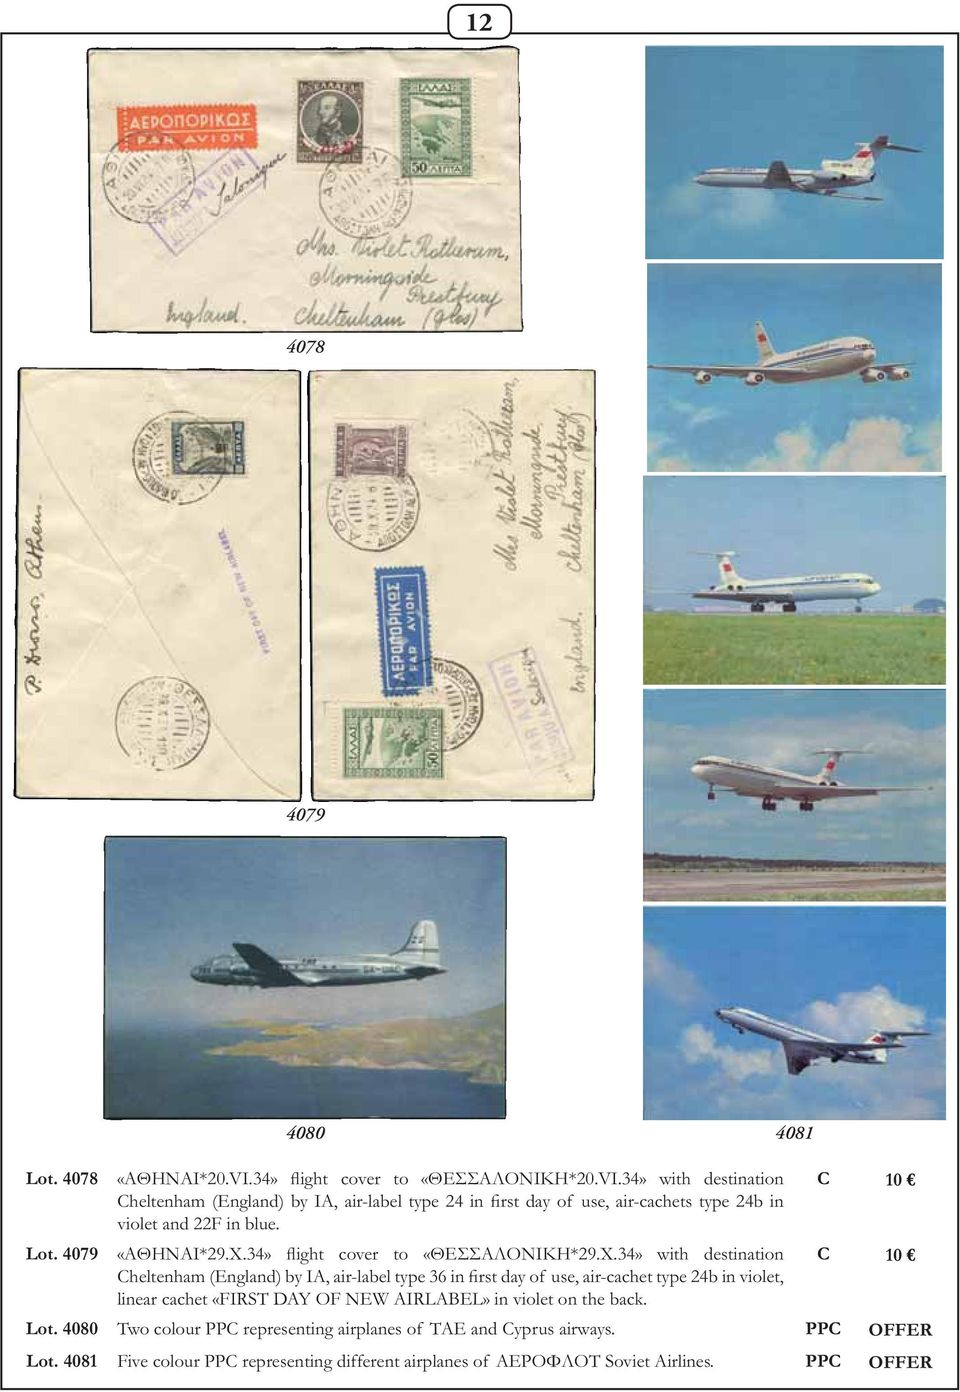 34» with destination Cheltenham (England) by IA, air-label type 24 in first day of use, air-cachets type 24b in violet and 22F in blue. «ΑΘΗΝΑΙ*29.X.